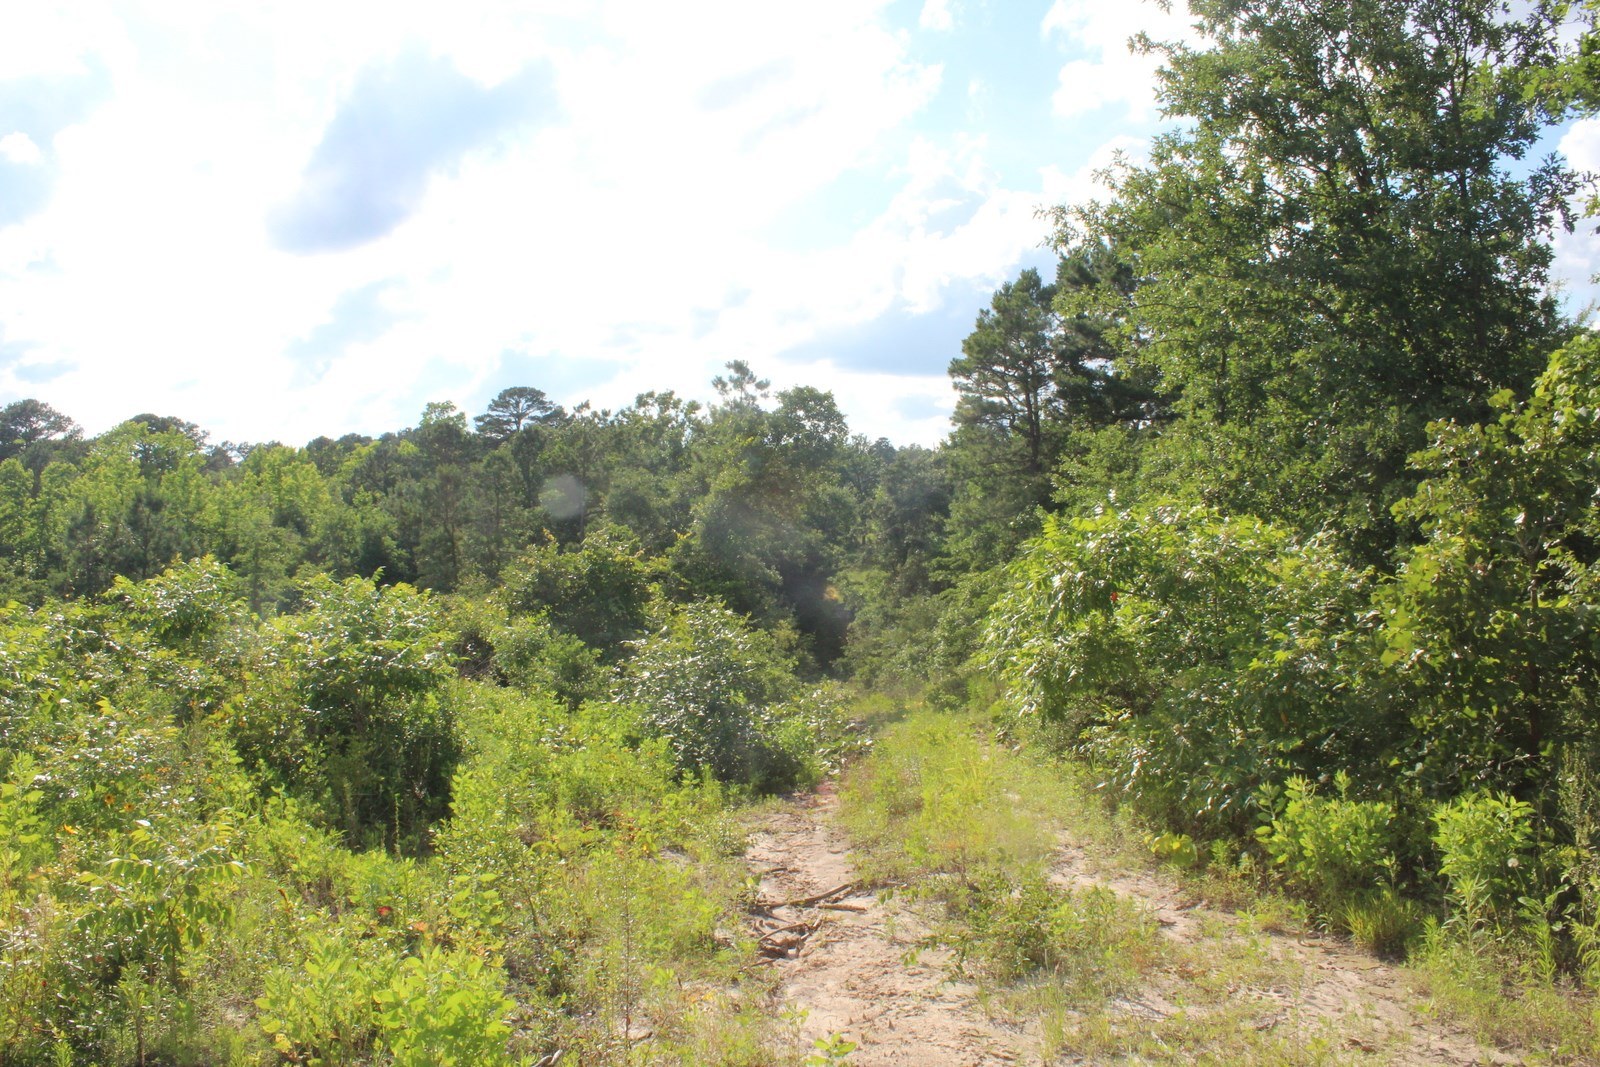 WOODED EAST TEXAS WOOD COUNTY LAND FOR SALE 23.5 ACRES